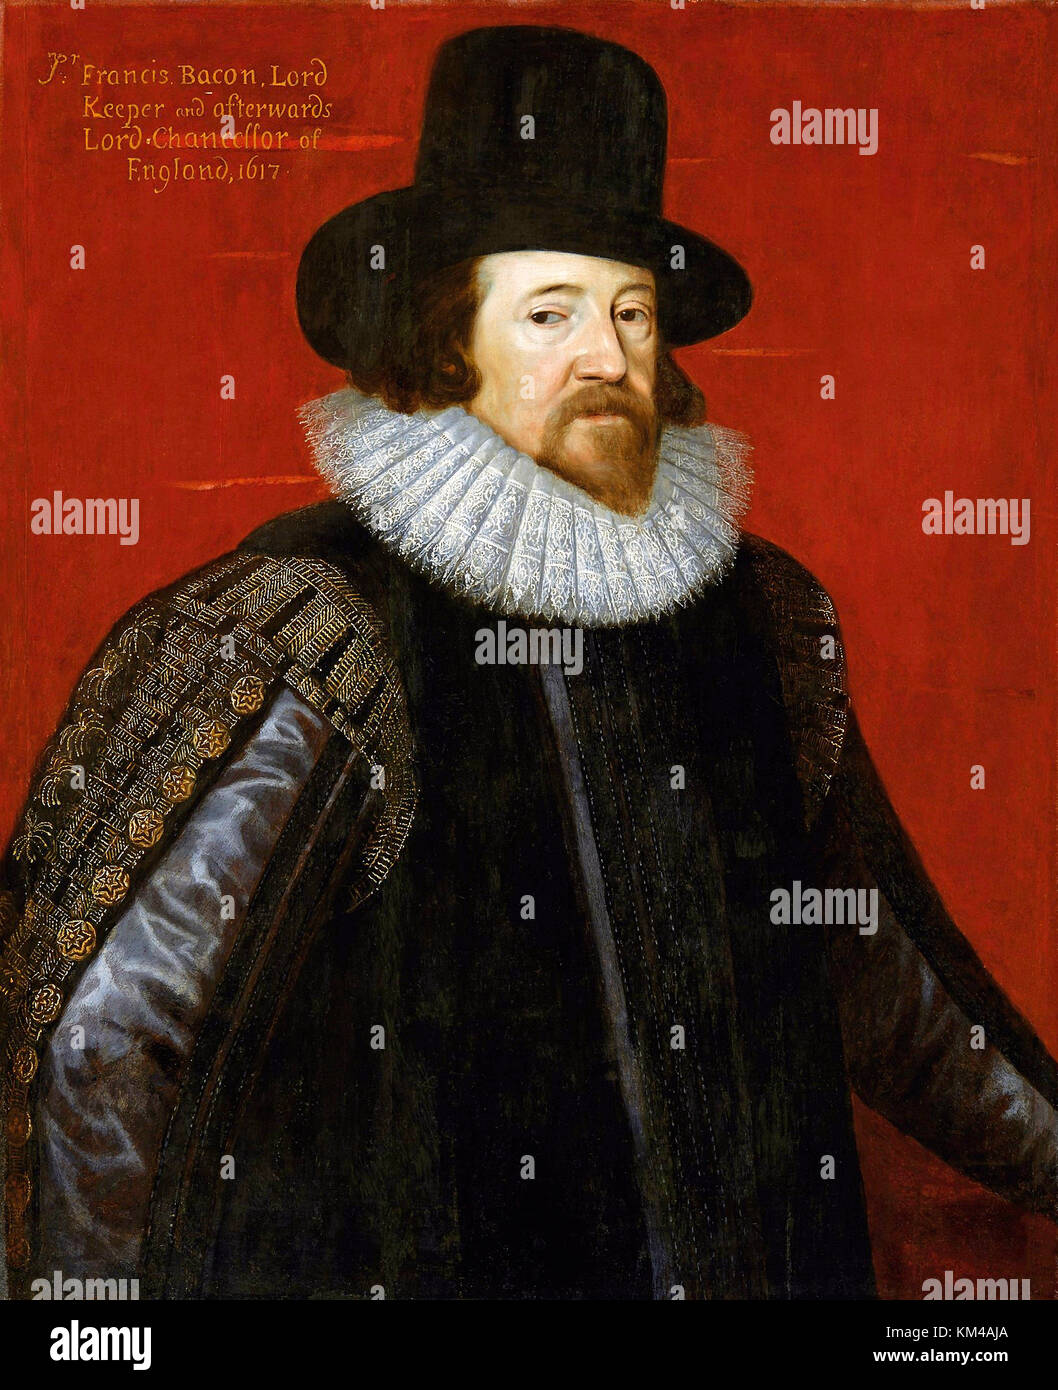 Francis Bacon, 1st Viscount St Alban, English philosopher, statesman, scientist and author - Stock Image